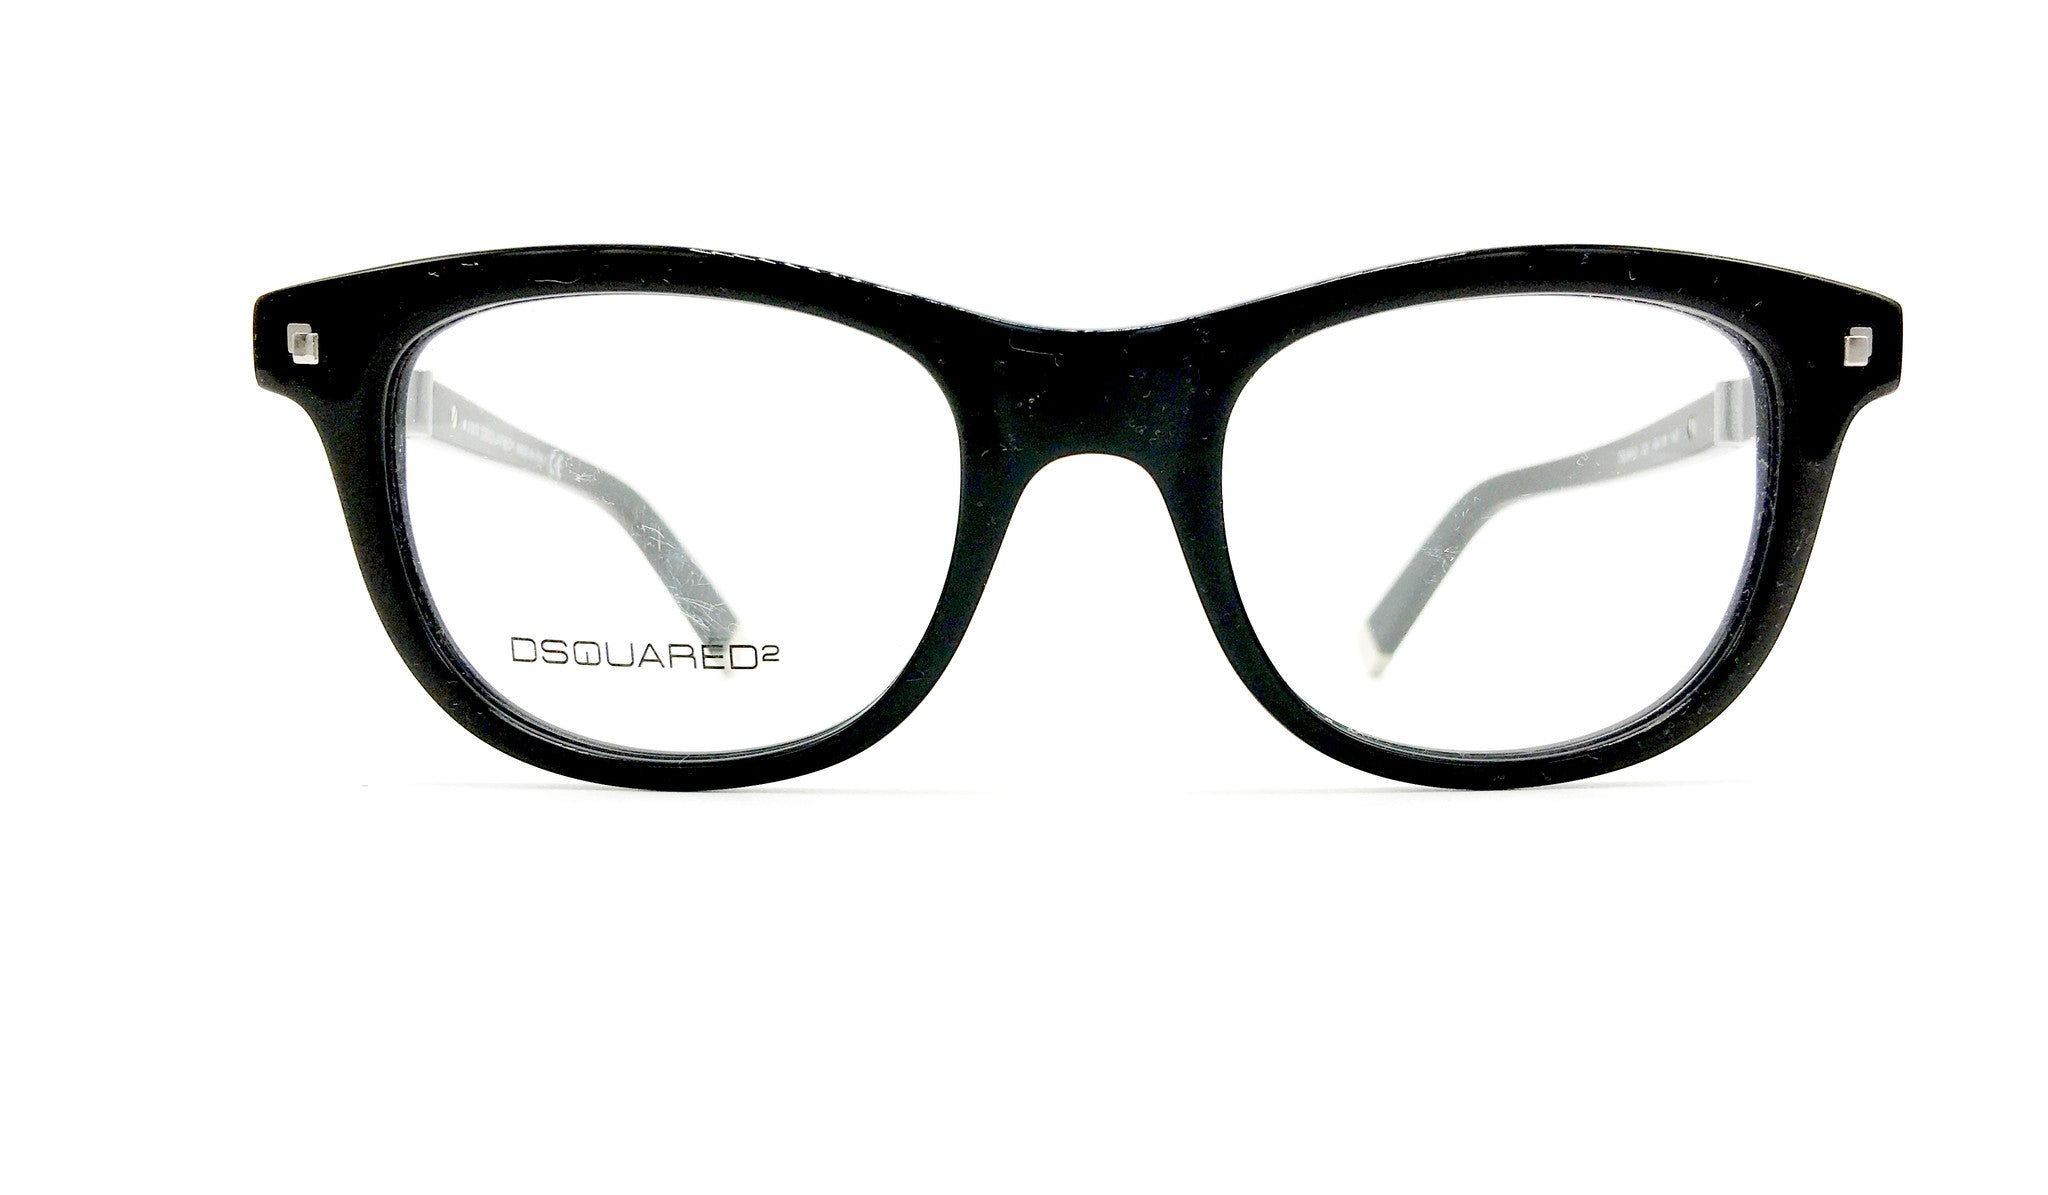 DSquared2 Glasses